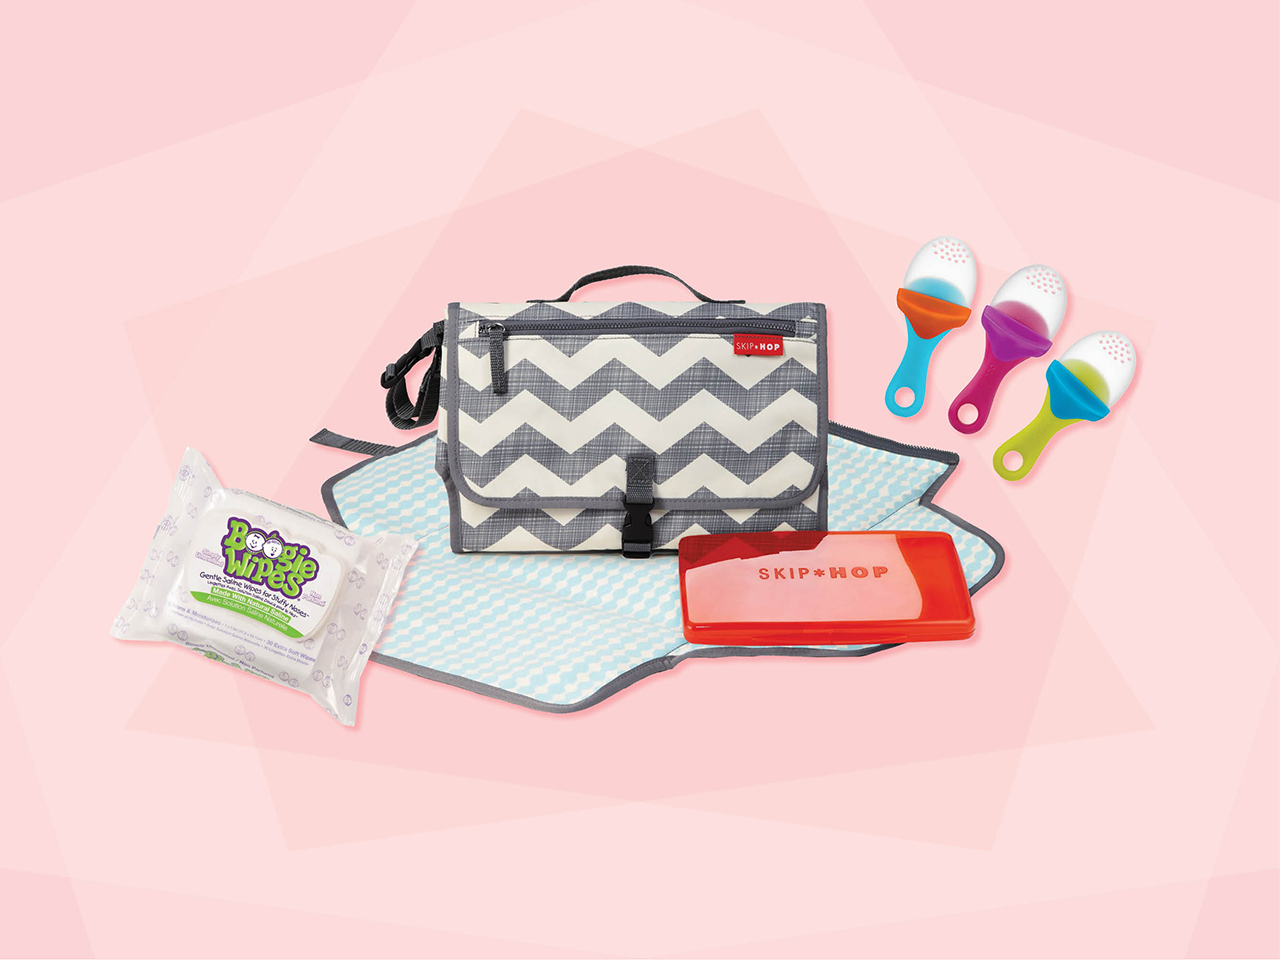 clever baby products like a diaper changing station, boogie wipes and silicone feeders